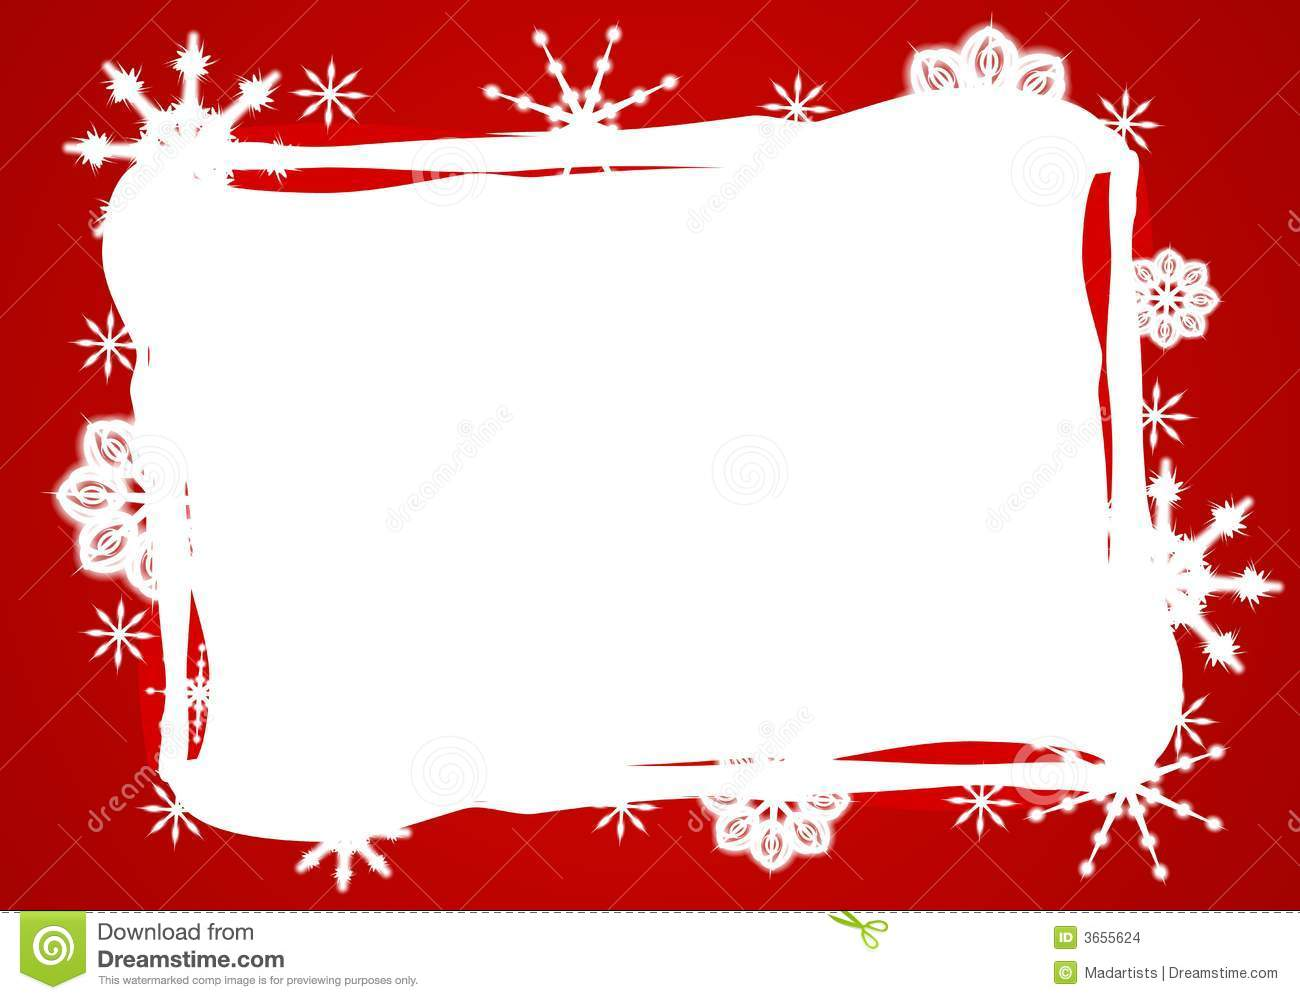 ... featuring a red and white snowflake frame, background or border